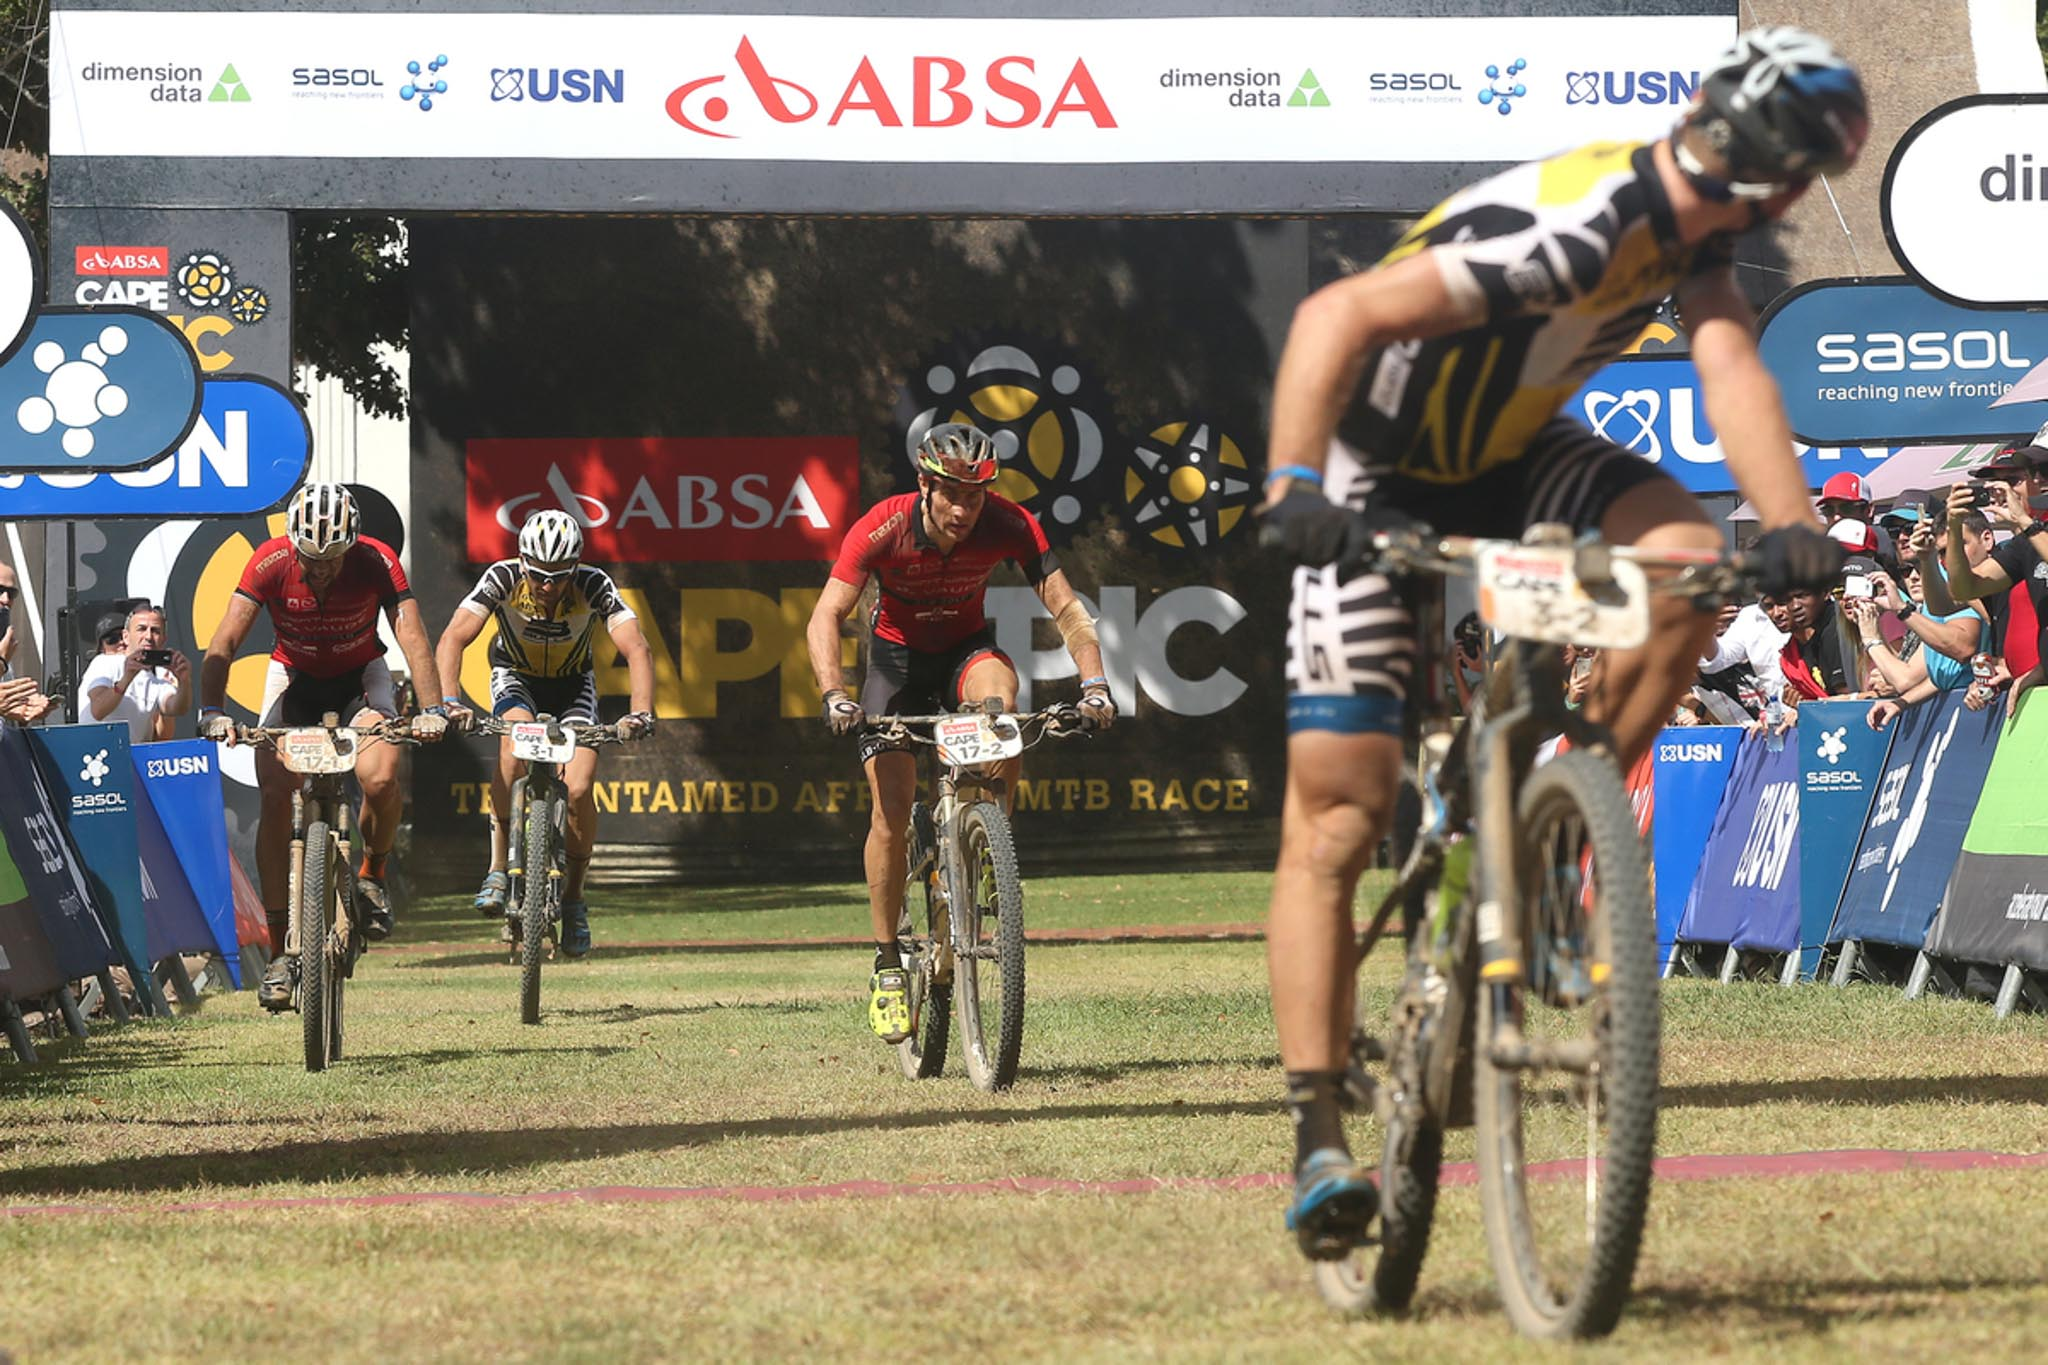 Urs Huber of the Bulls looks back to his partner as Nicola Rohrbach and Matthias Pfommer of Centurion Vaude by Meerendal 2 finish ahead of Karl Platt of the Bulls to win the stage during stage 5 of the 2016 Absa Cape Epic Mountain Bike stage race held from the Cape Peninsula University of Technology in Wellington to Boschendal in Stellenbosch, South Africa on the 18th March 2016 Photo by Shaun Roy/Cape Epic/SPORTZPICS PLEASE ENSURE THE APPROPRIATE CREDIT IS GIVEN TO THE PHOTOGRAPHER AND SPORTZPICS ALONG WITH THE ABSA CAPE EPIC {ace2016}